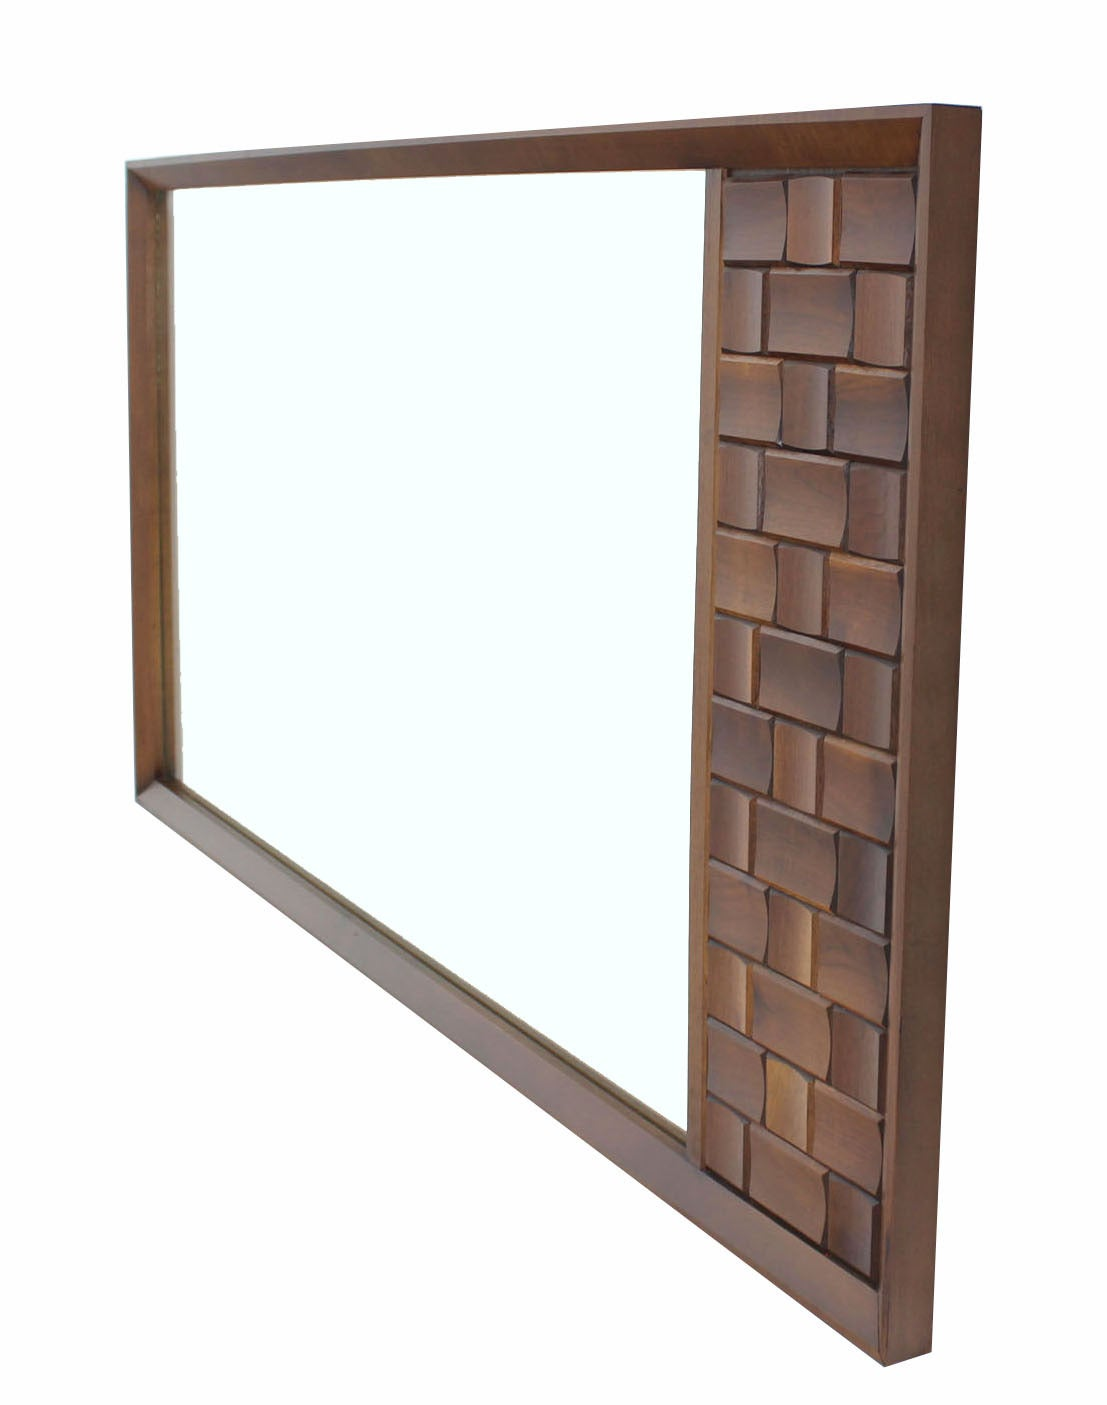 American Large Walnut Frame Mirror with Solid Walnut Carved Panel For Sale